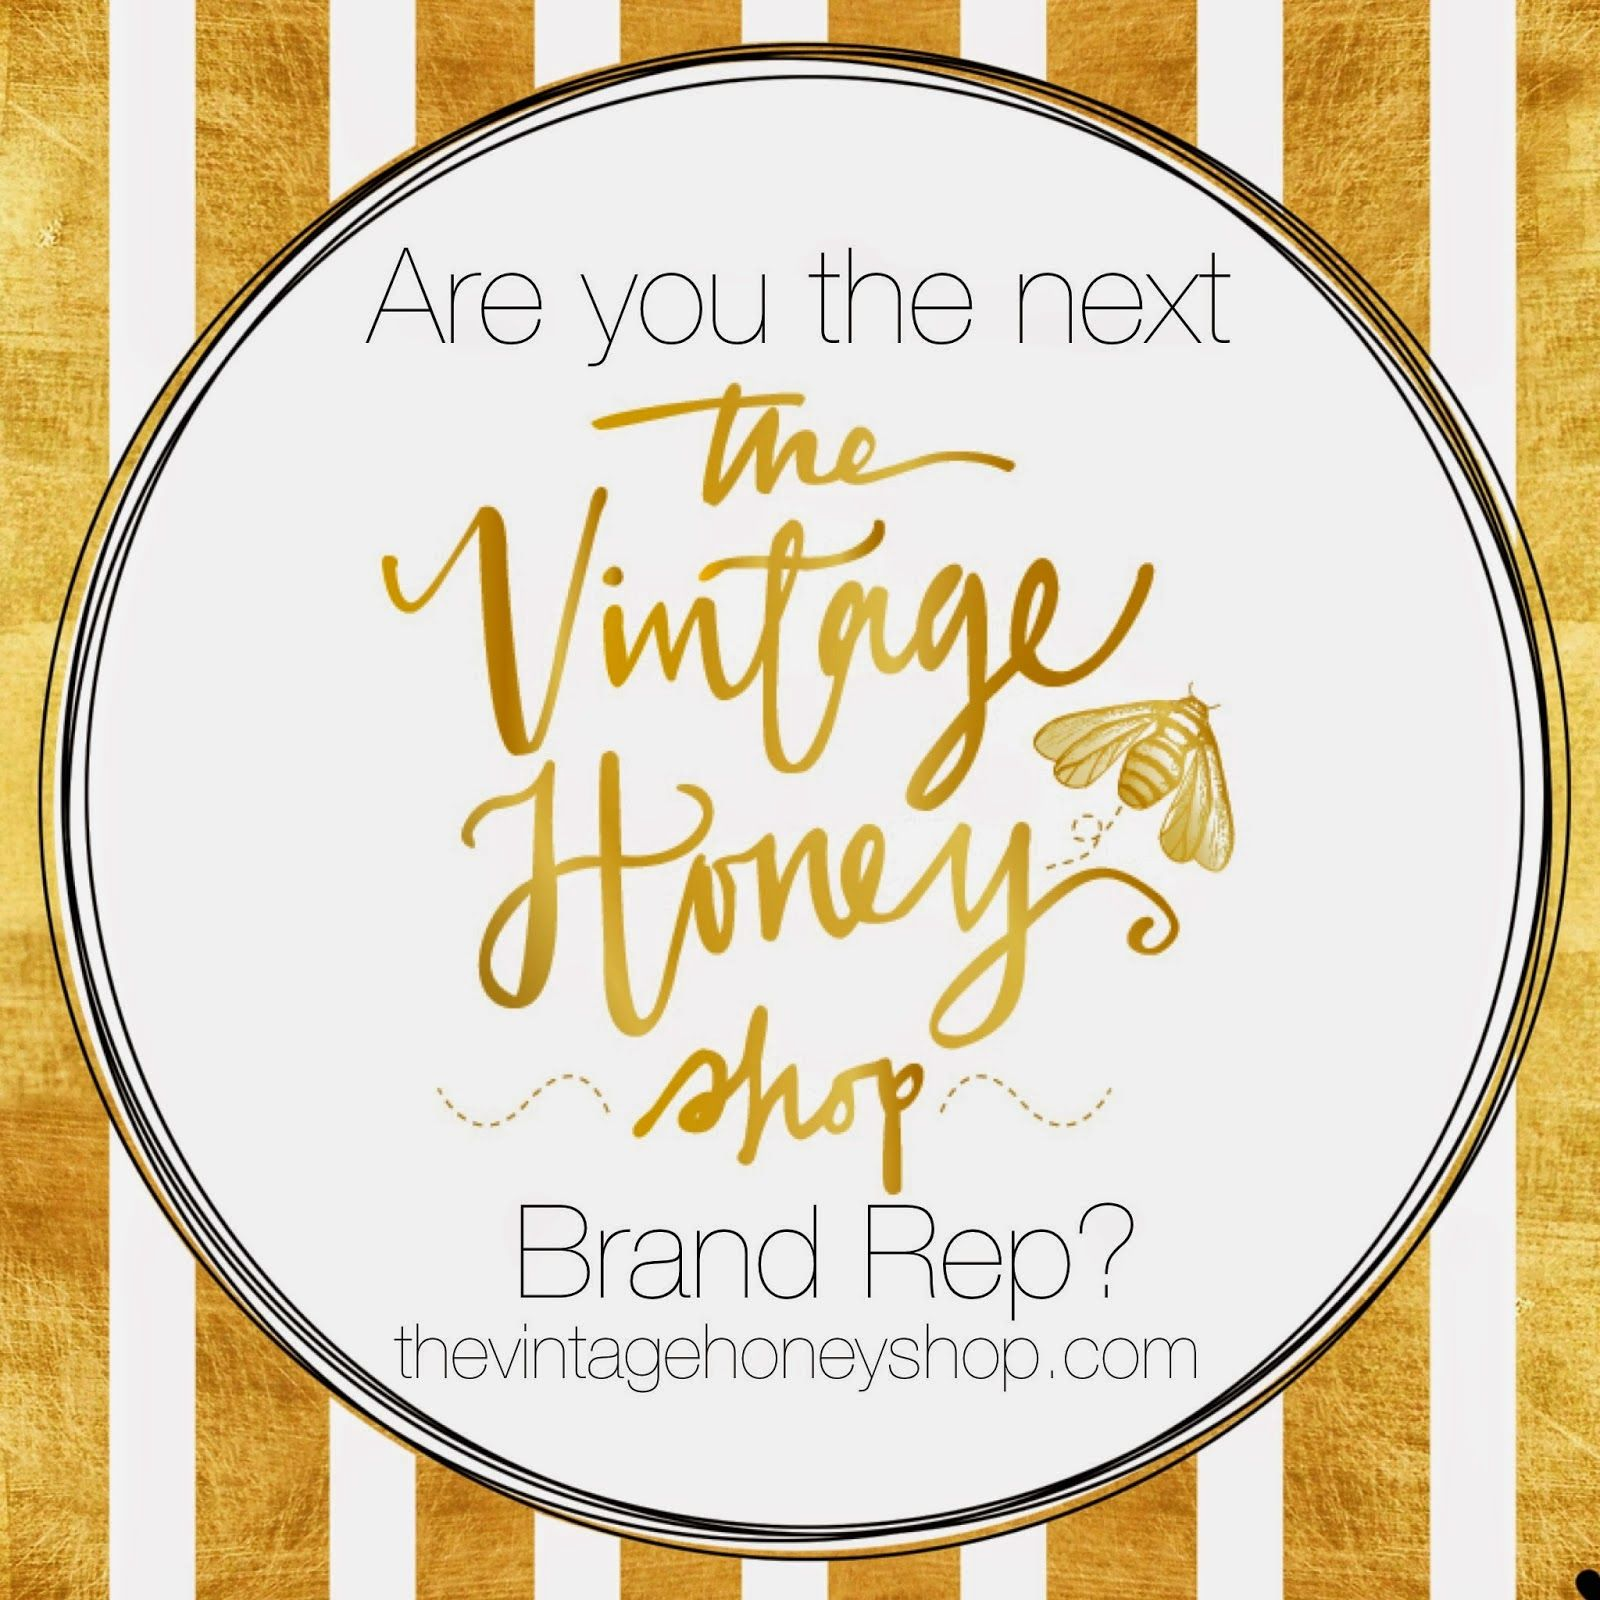 The Vintage Honey Shop: Vintage Honey Brand Rep Search for instagram